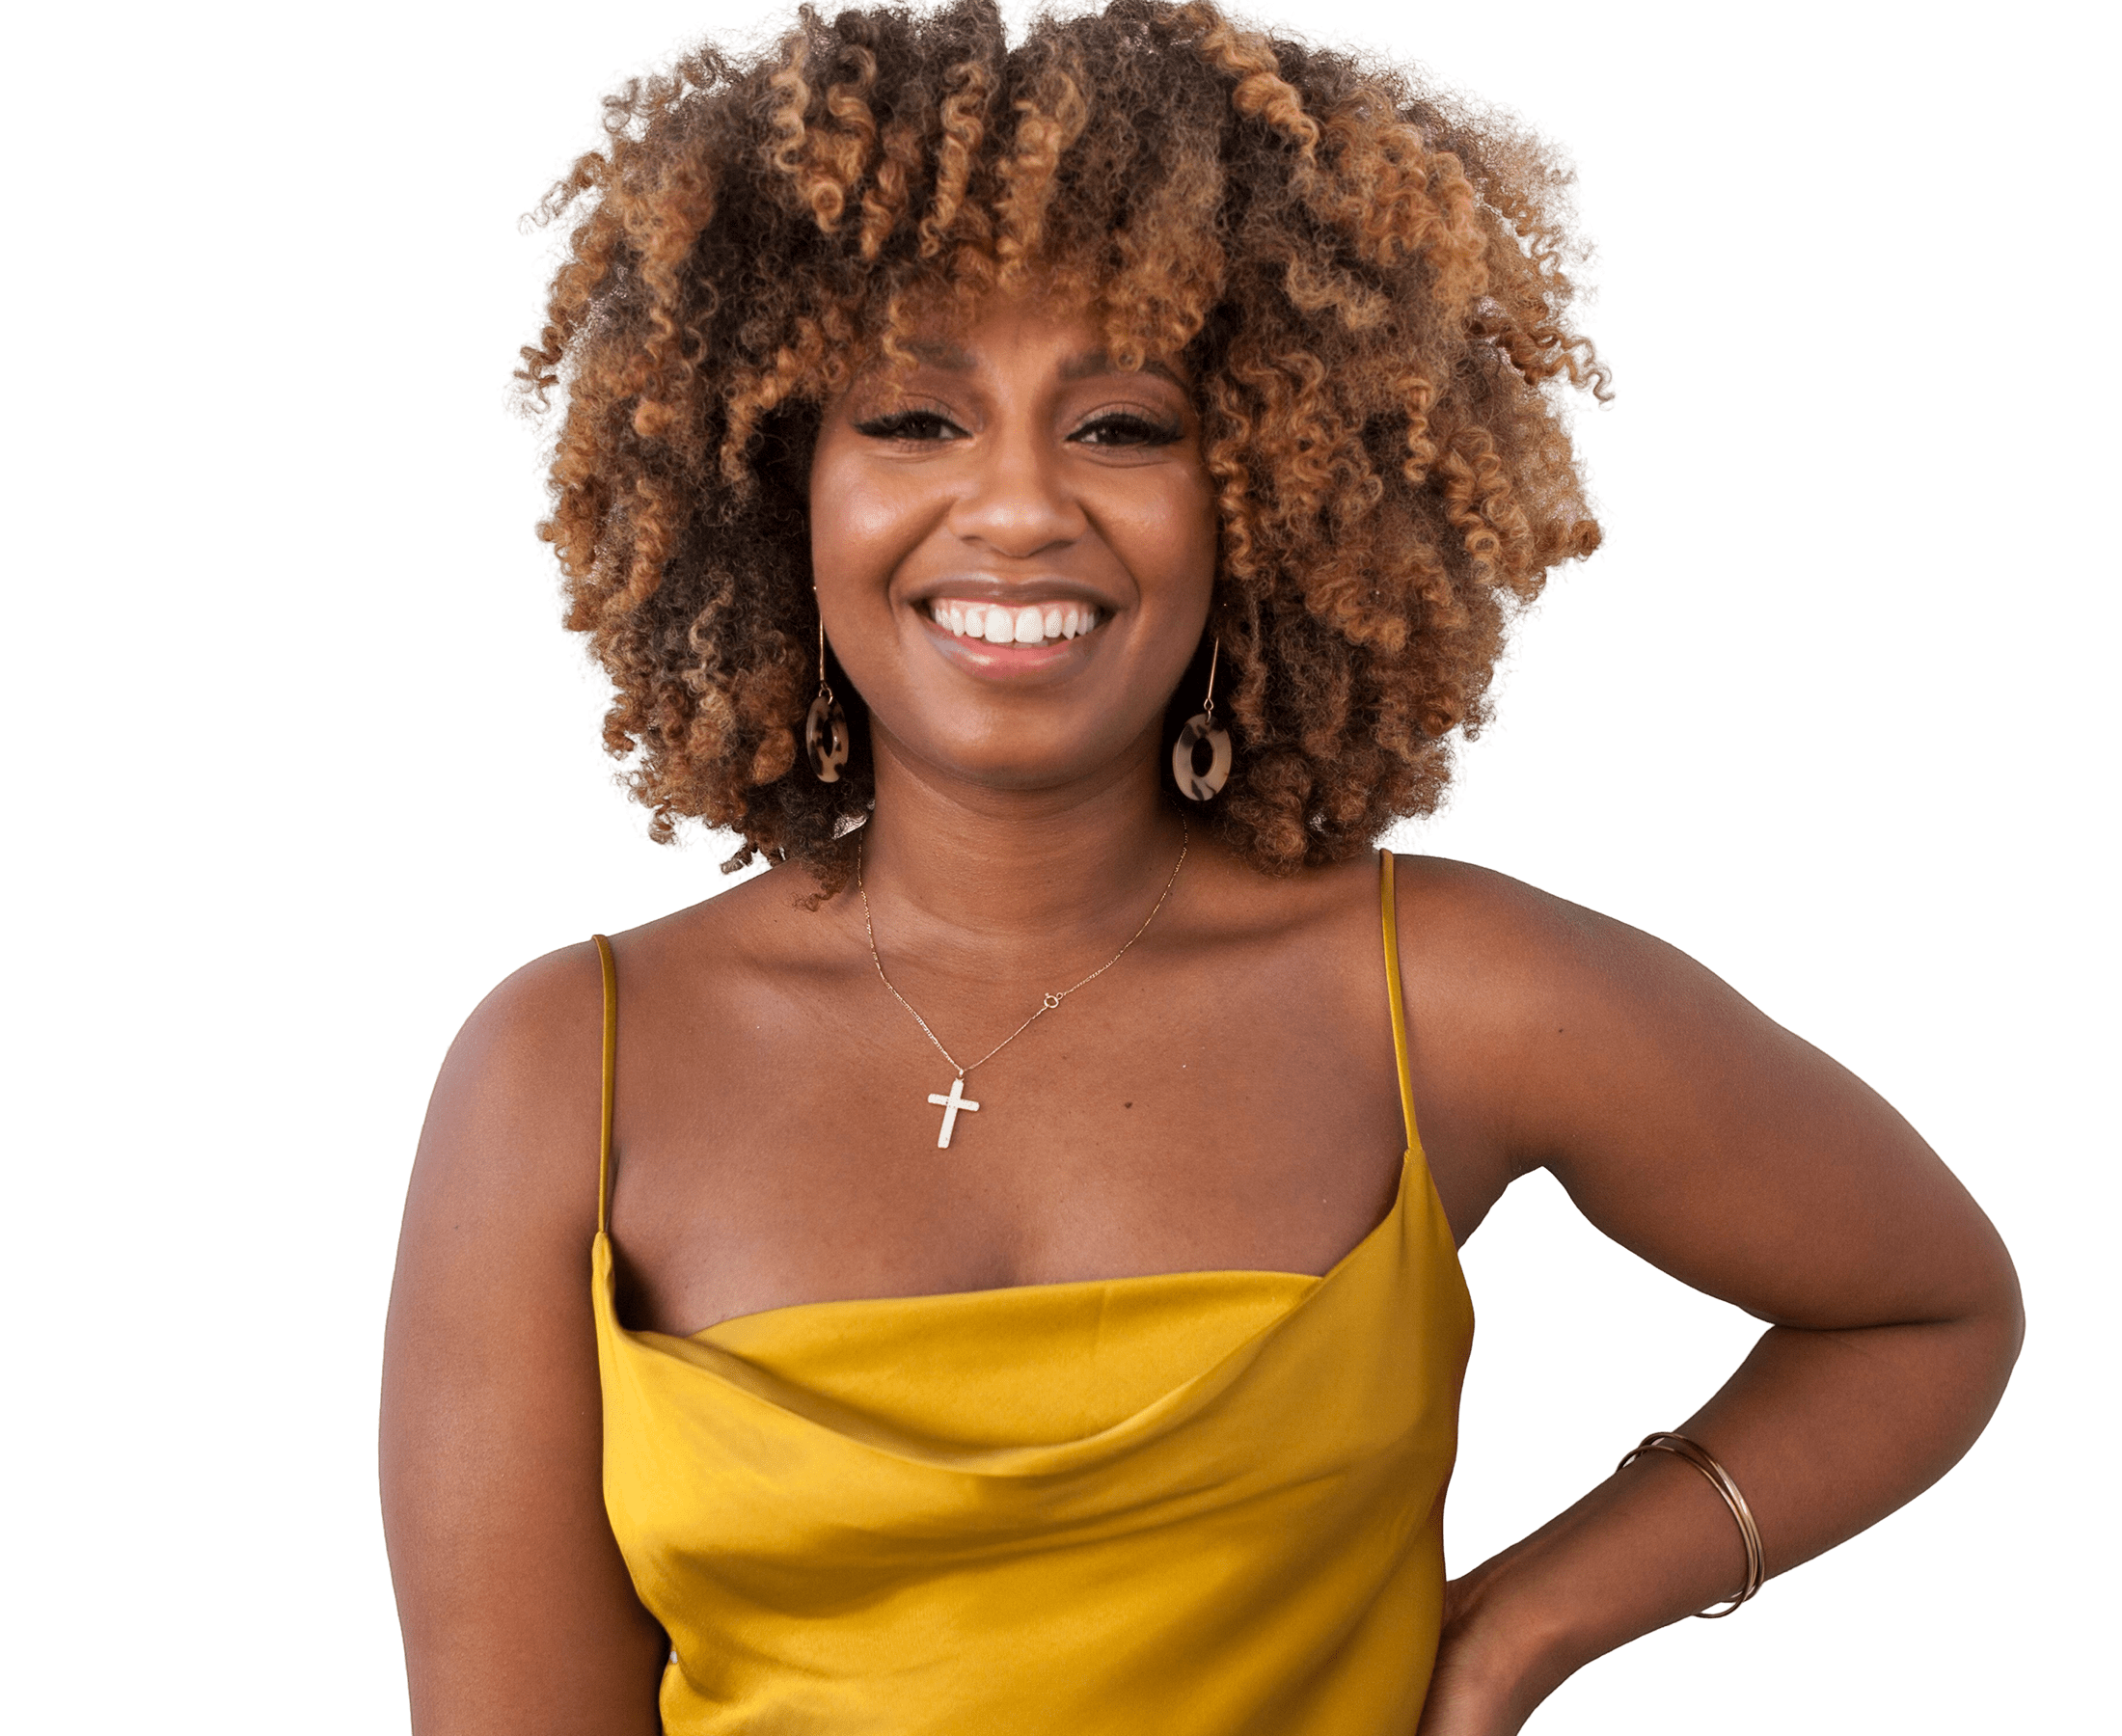 Woman smiling with short highlighted curly hair